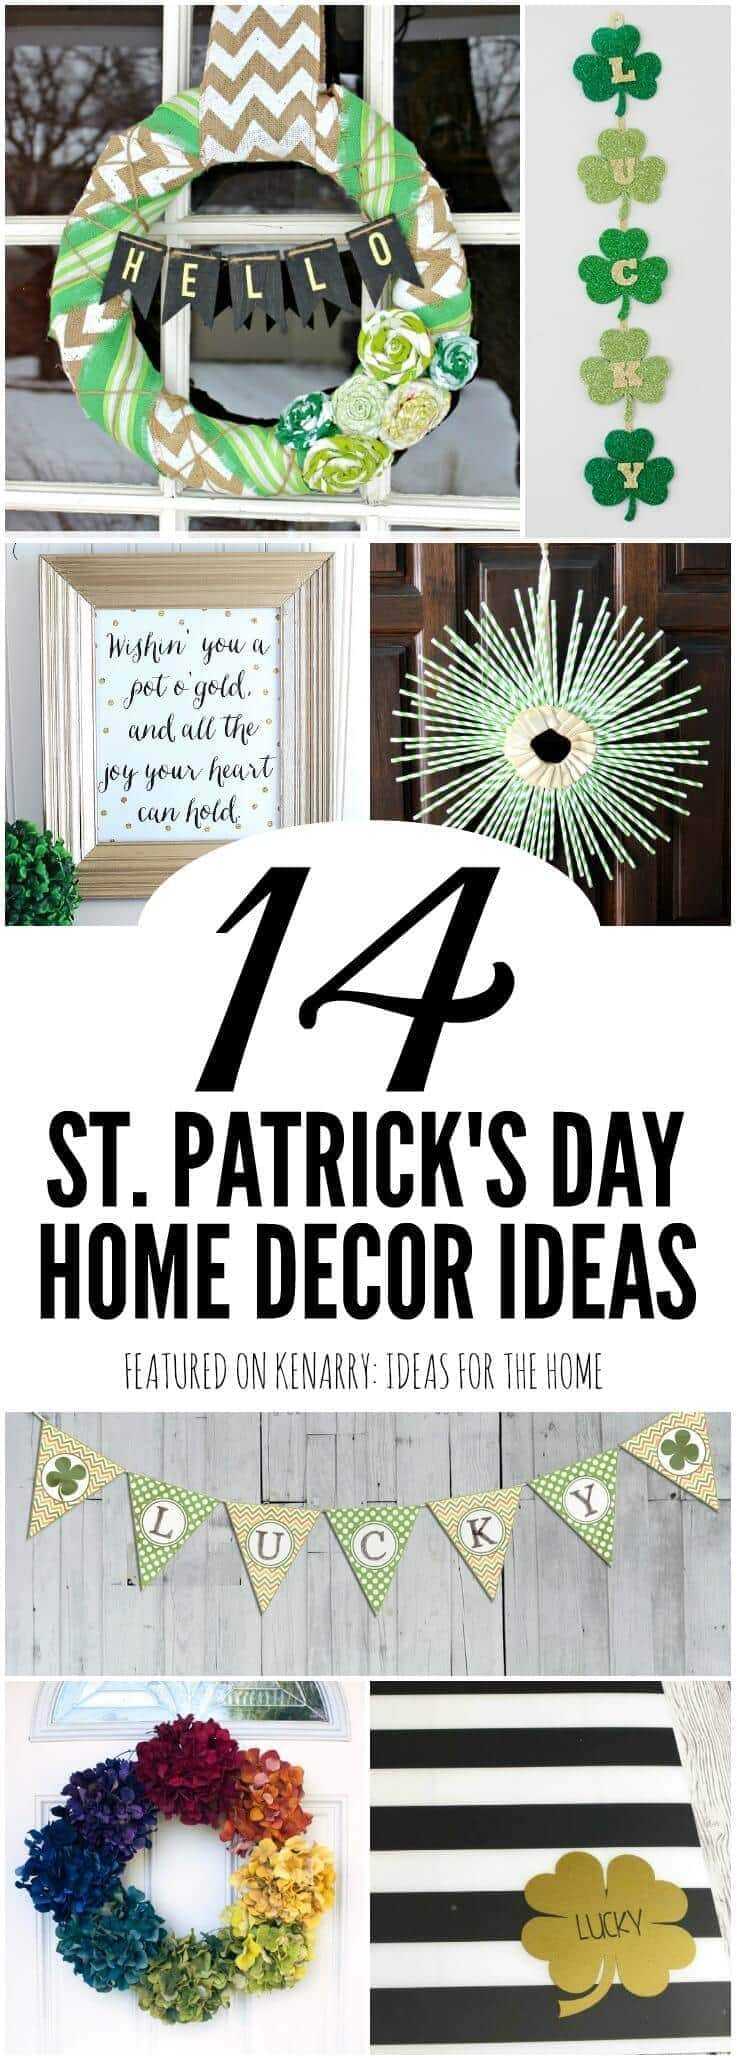 Love these easy ideas for crafts and free printables you can use for St. Patrick's Day home decor including wreaths, placemats, banners and more adorned with shamrocks and green decorations.